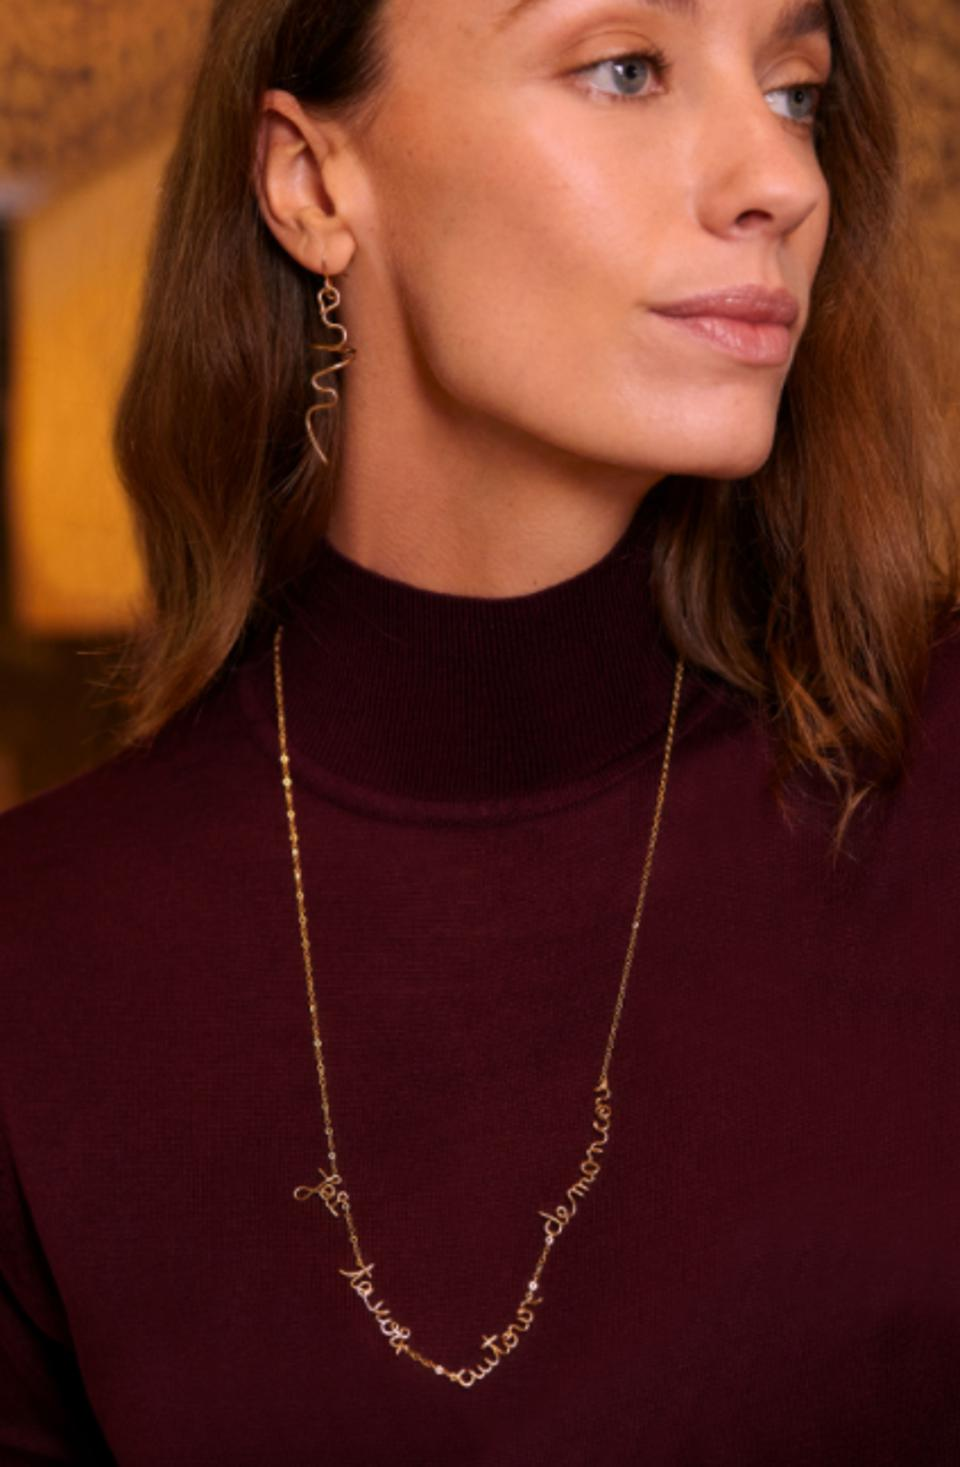 The Berthe Necklace from the Atelier Paulin x Jean Cocteau collection is made from 14 carat gold-filled wire by talented artisans and is water and weather resistant.